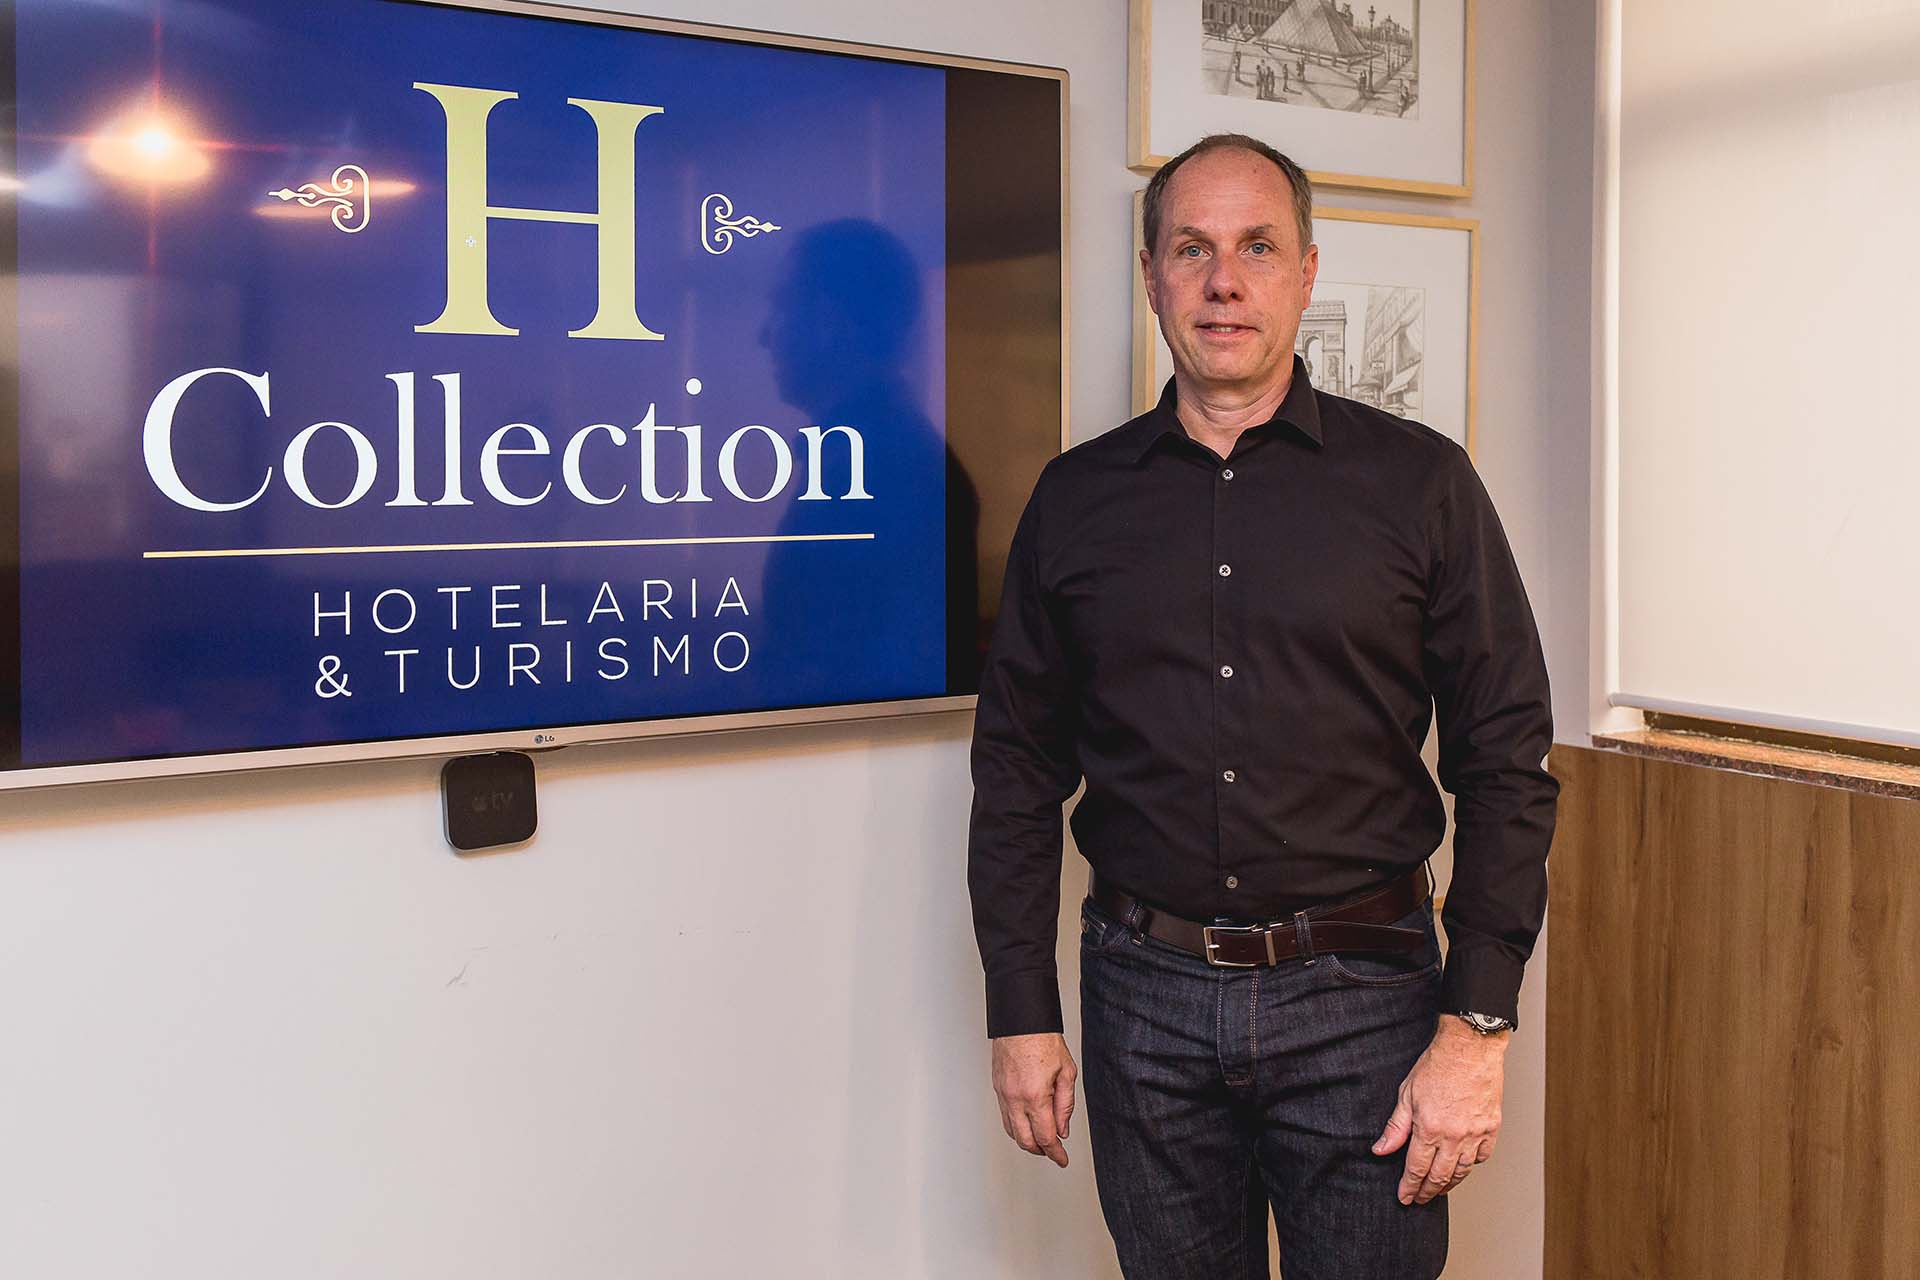 Bruno Bahia, diretor da H Collection